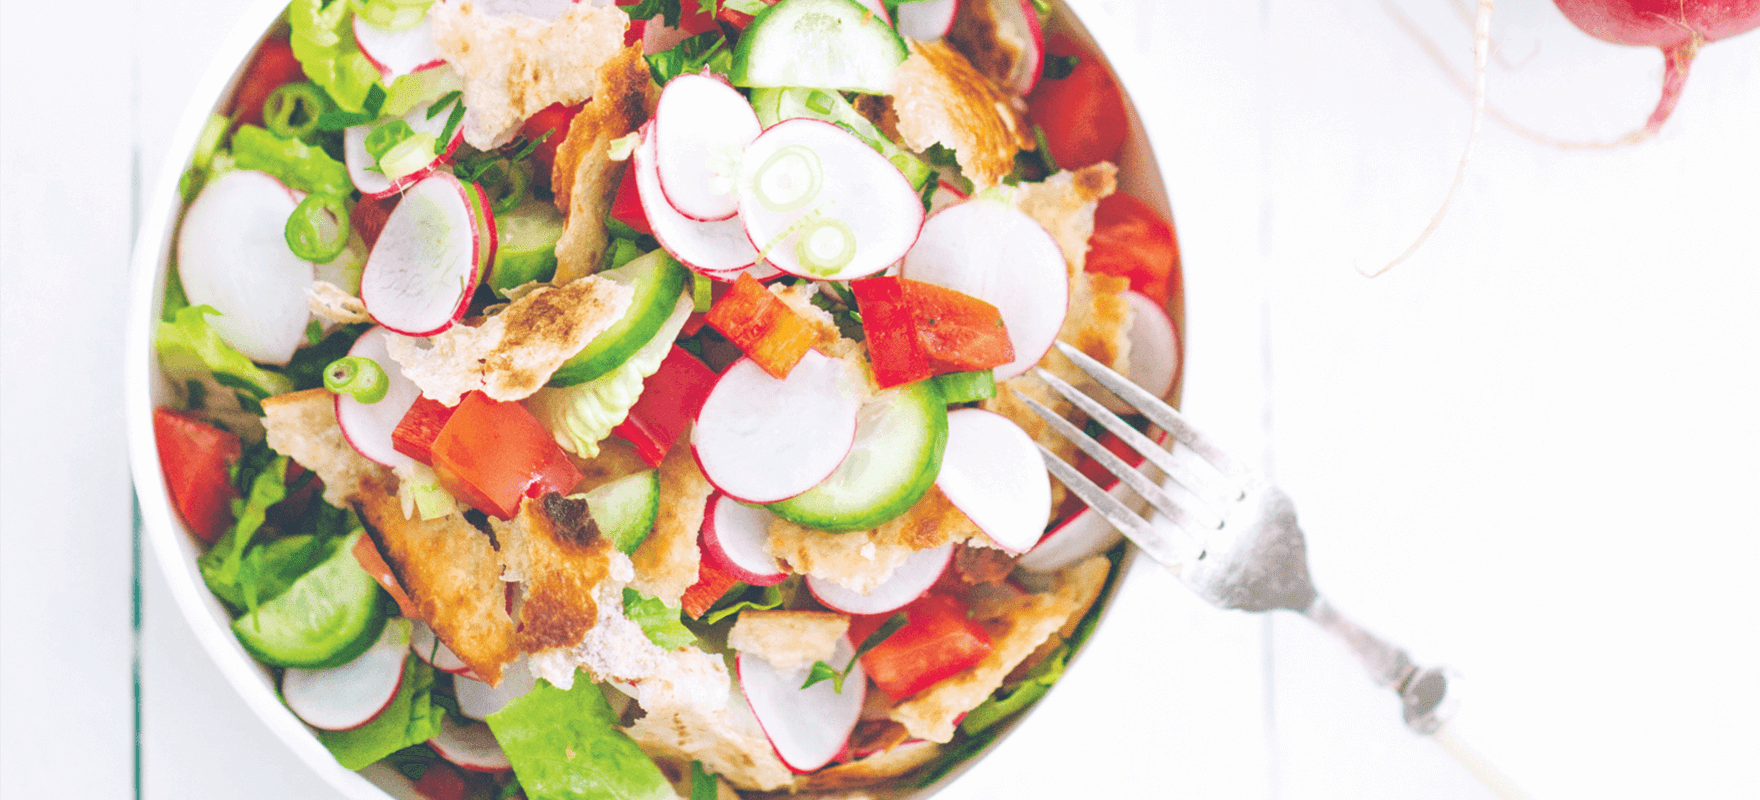 Fattoush salad with toasted bread and sumac image 1